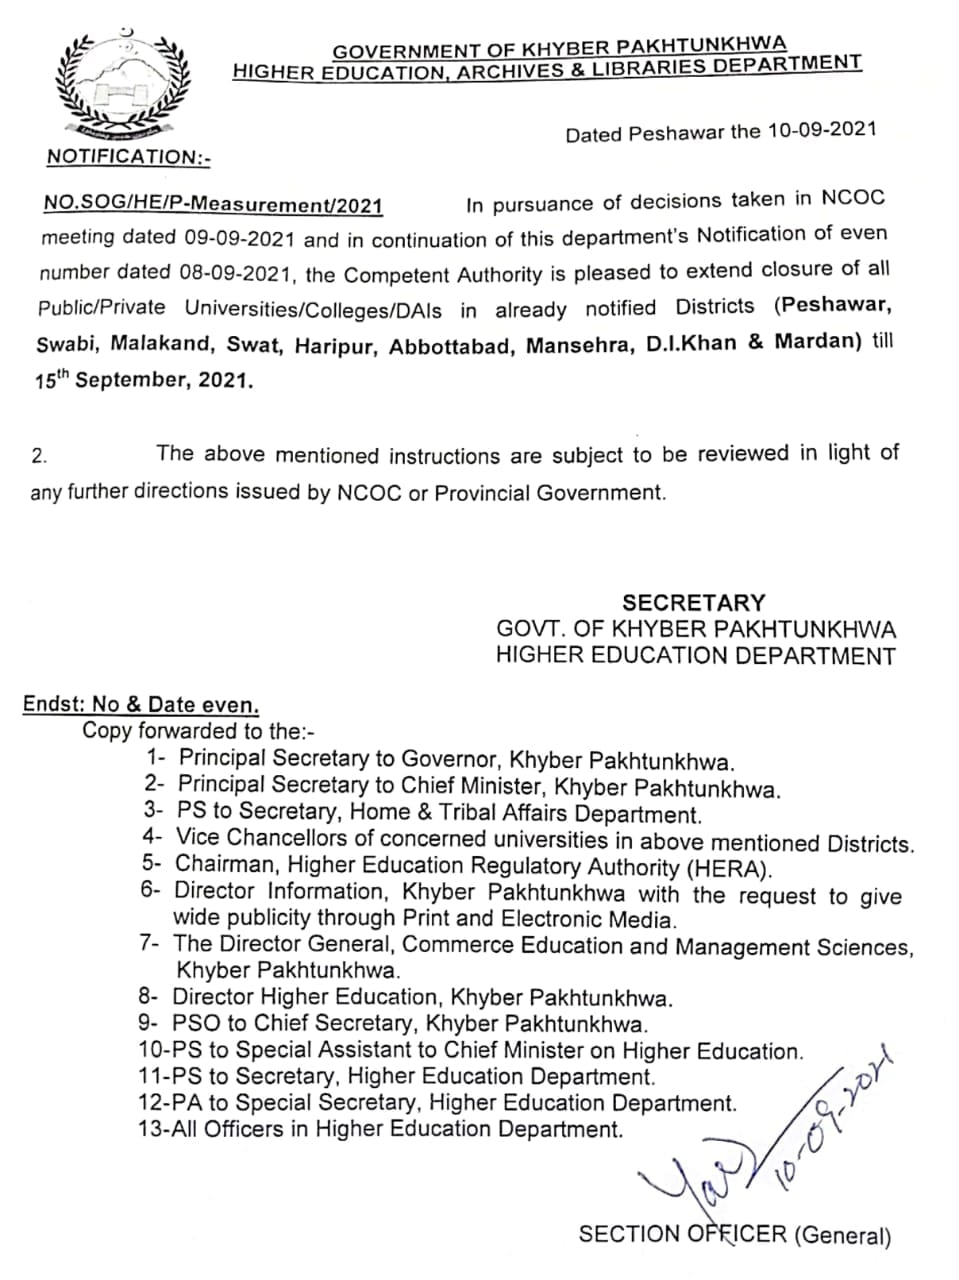 Extension Holidays in SchoolsColleges till 15th Sep 2021